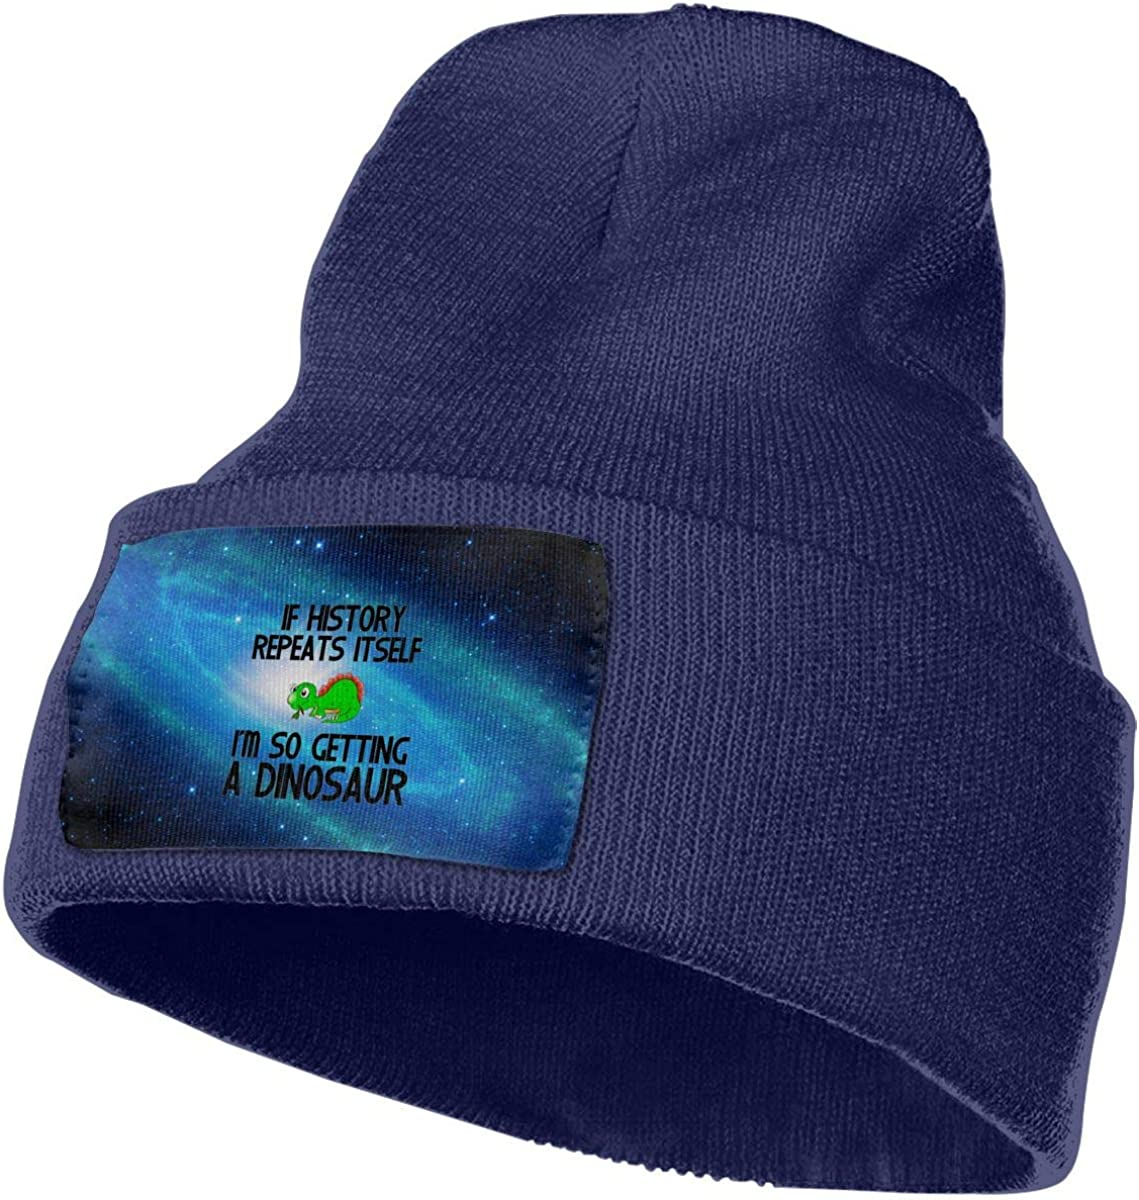 Im Getting A Dinosaur Winter Beanie Hat Knit Skull Cap for for Men /& Women Helidoud If History Repeats